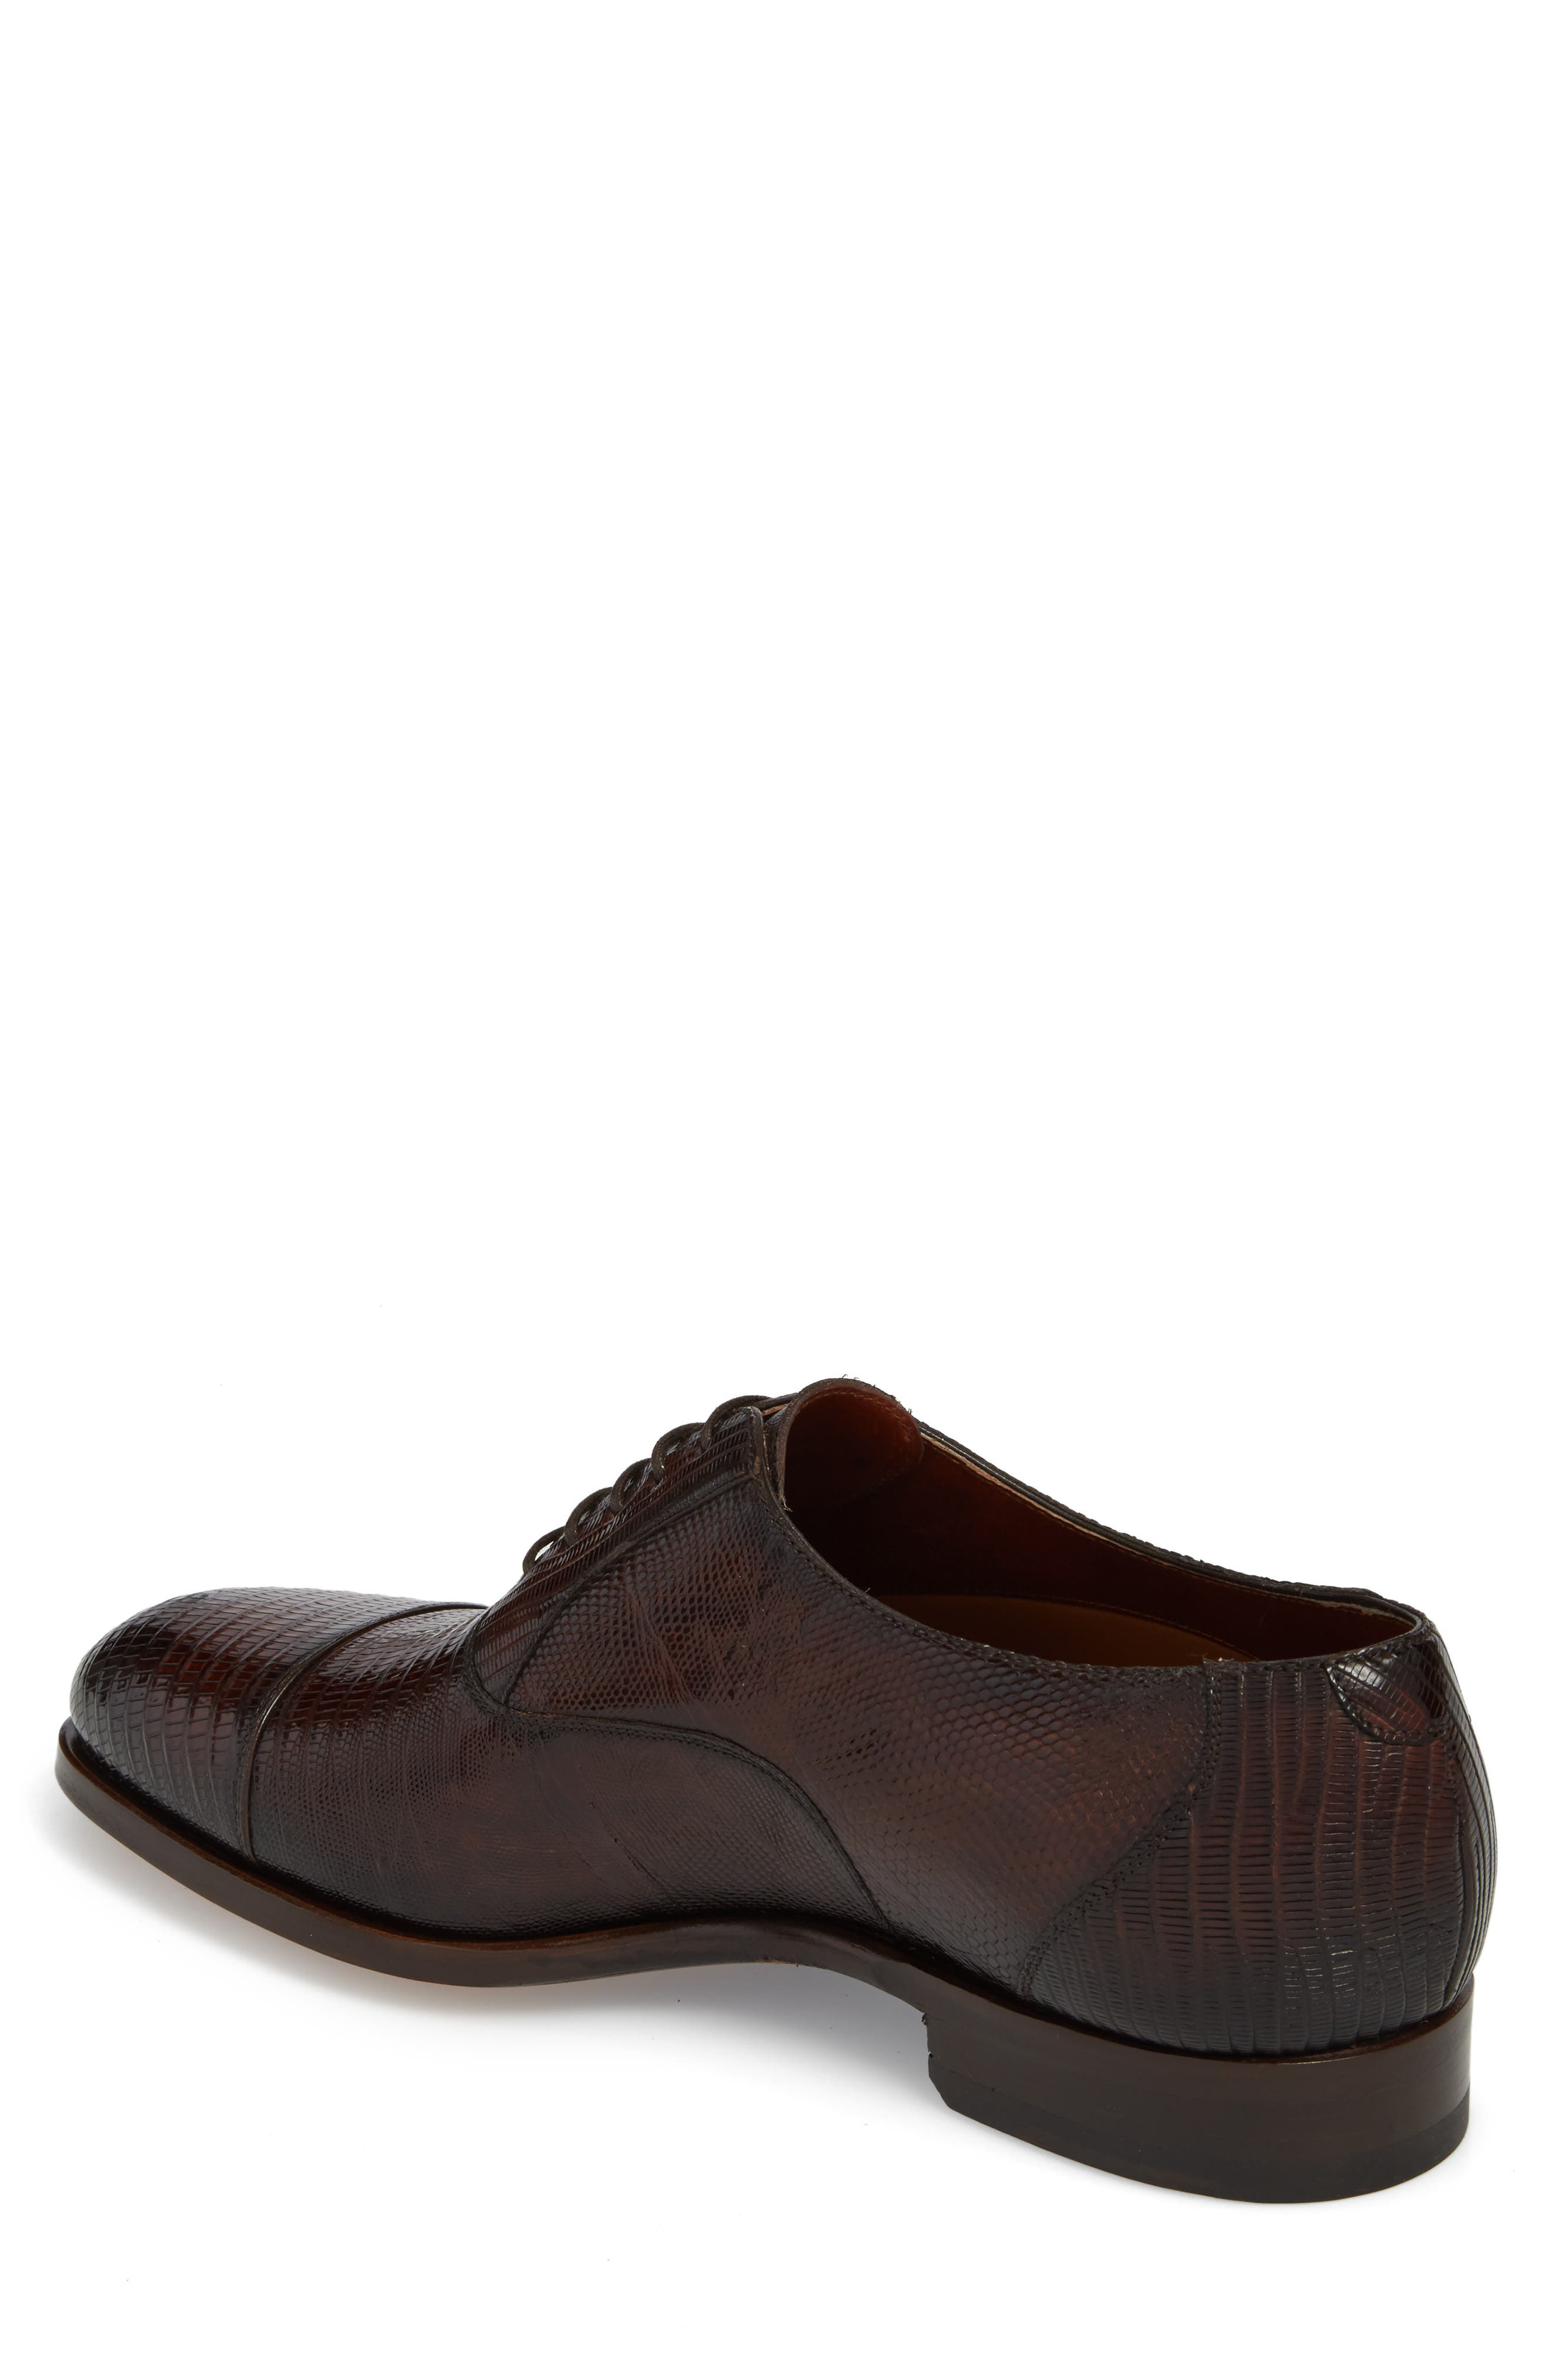 Palmiro Lizard Leather Cap Toe Derby,                             Alternate thumbnail 2, color,                             MID-BROWN LEATHER